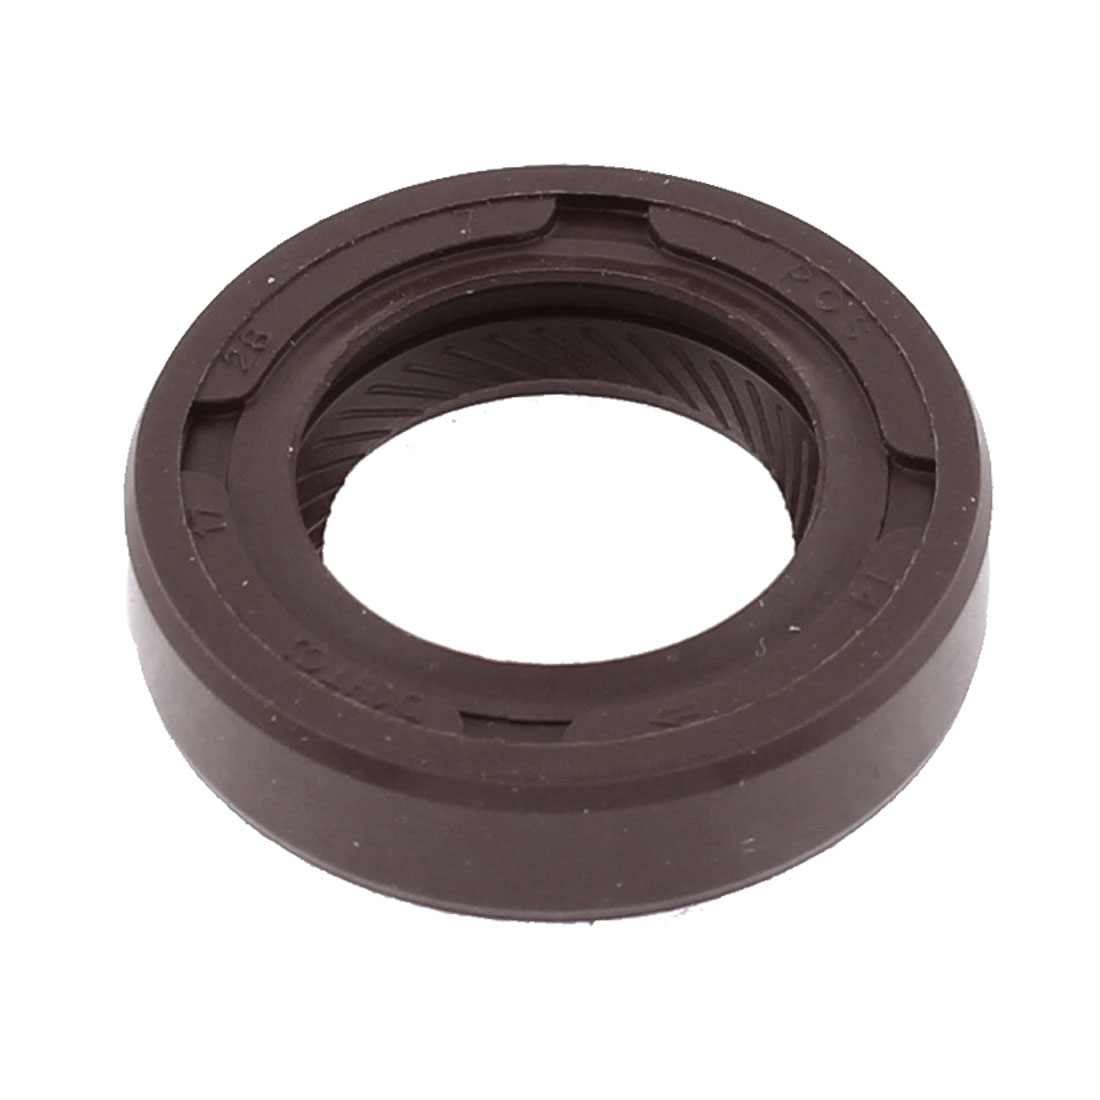 Engine Rotary Shaft Ring Double Lipped Oil Seal 17mm x 28mm x 7mm